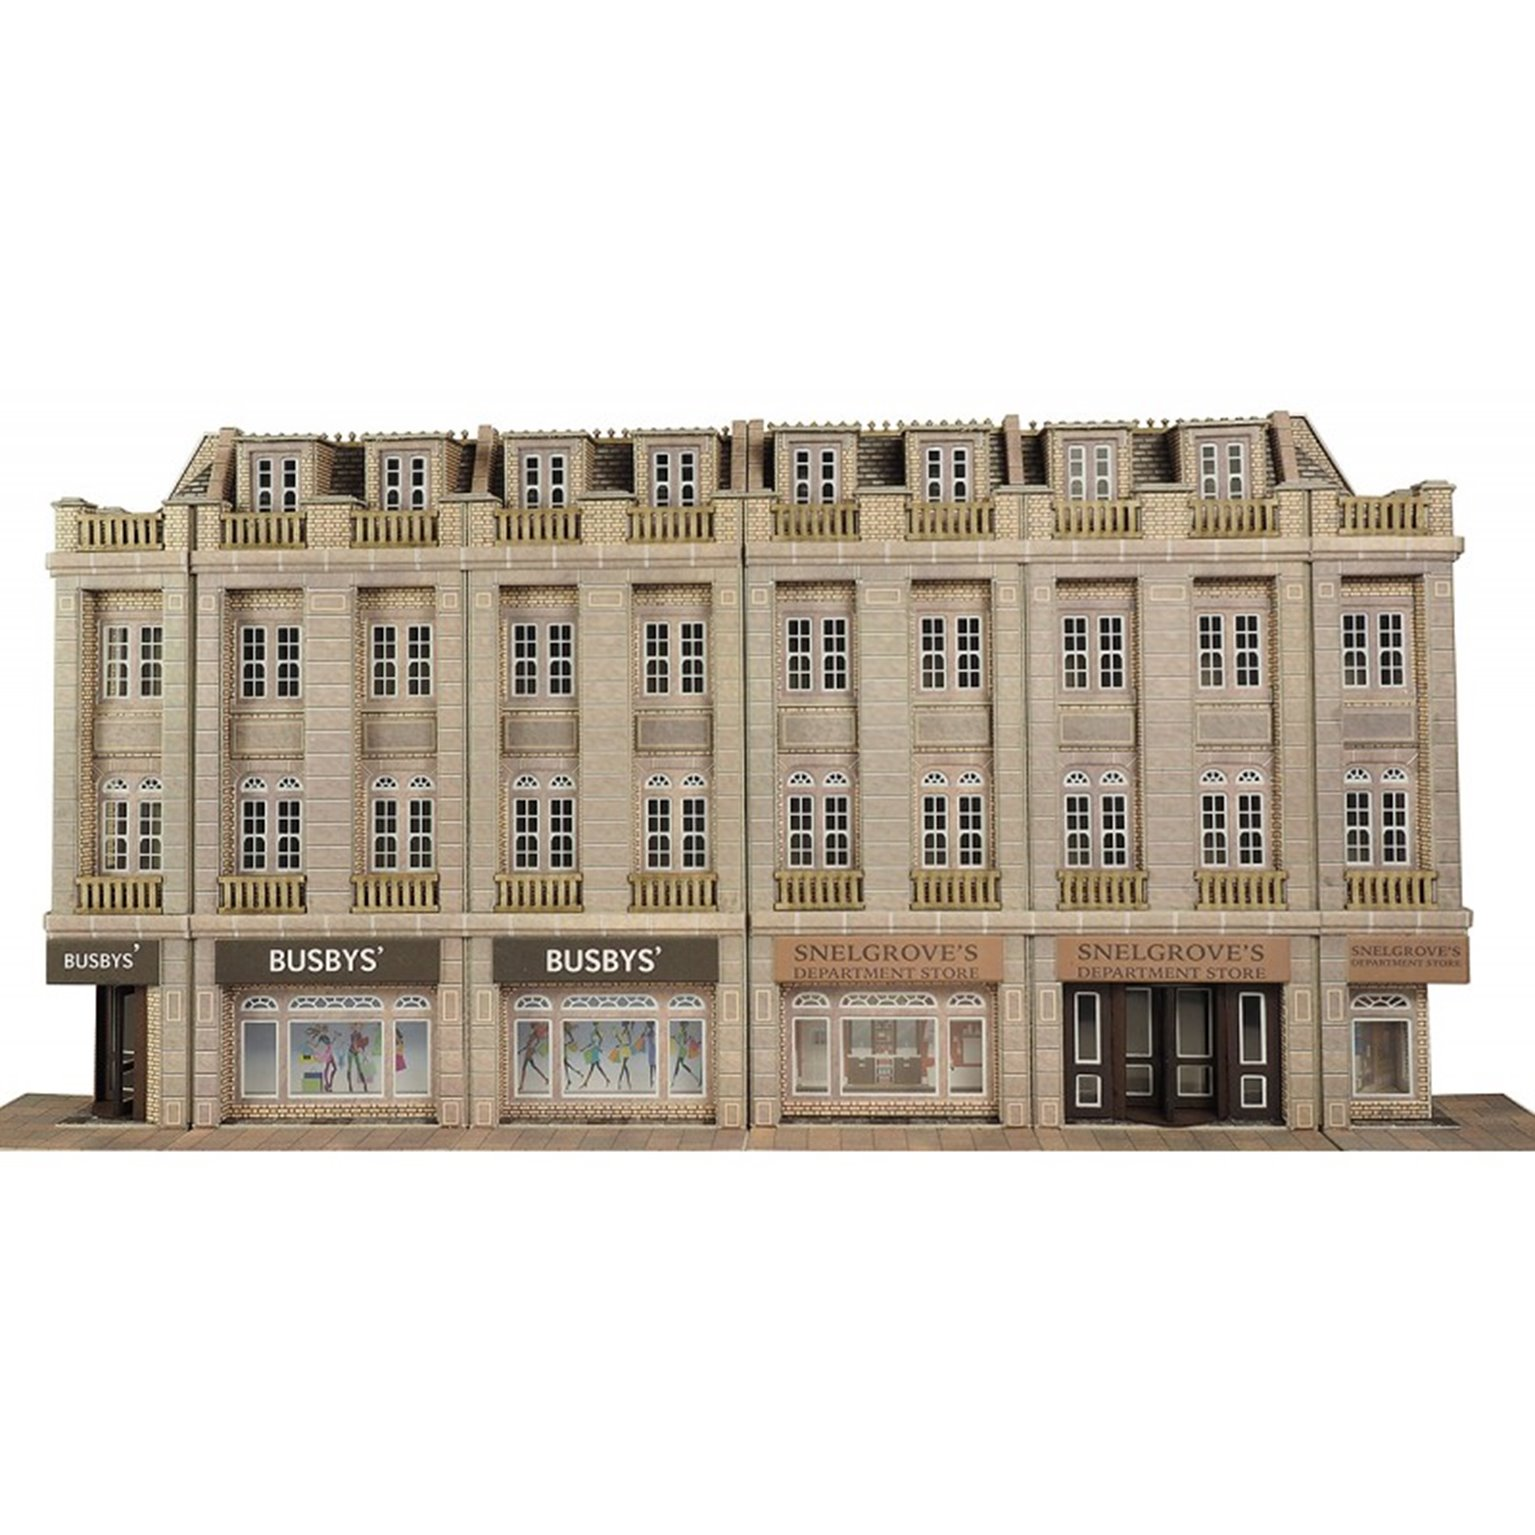 Low Relief Department Store